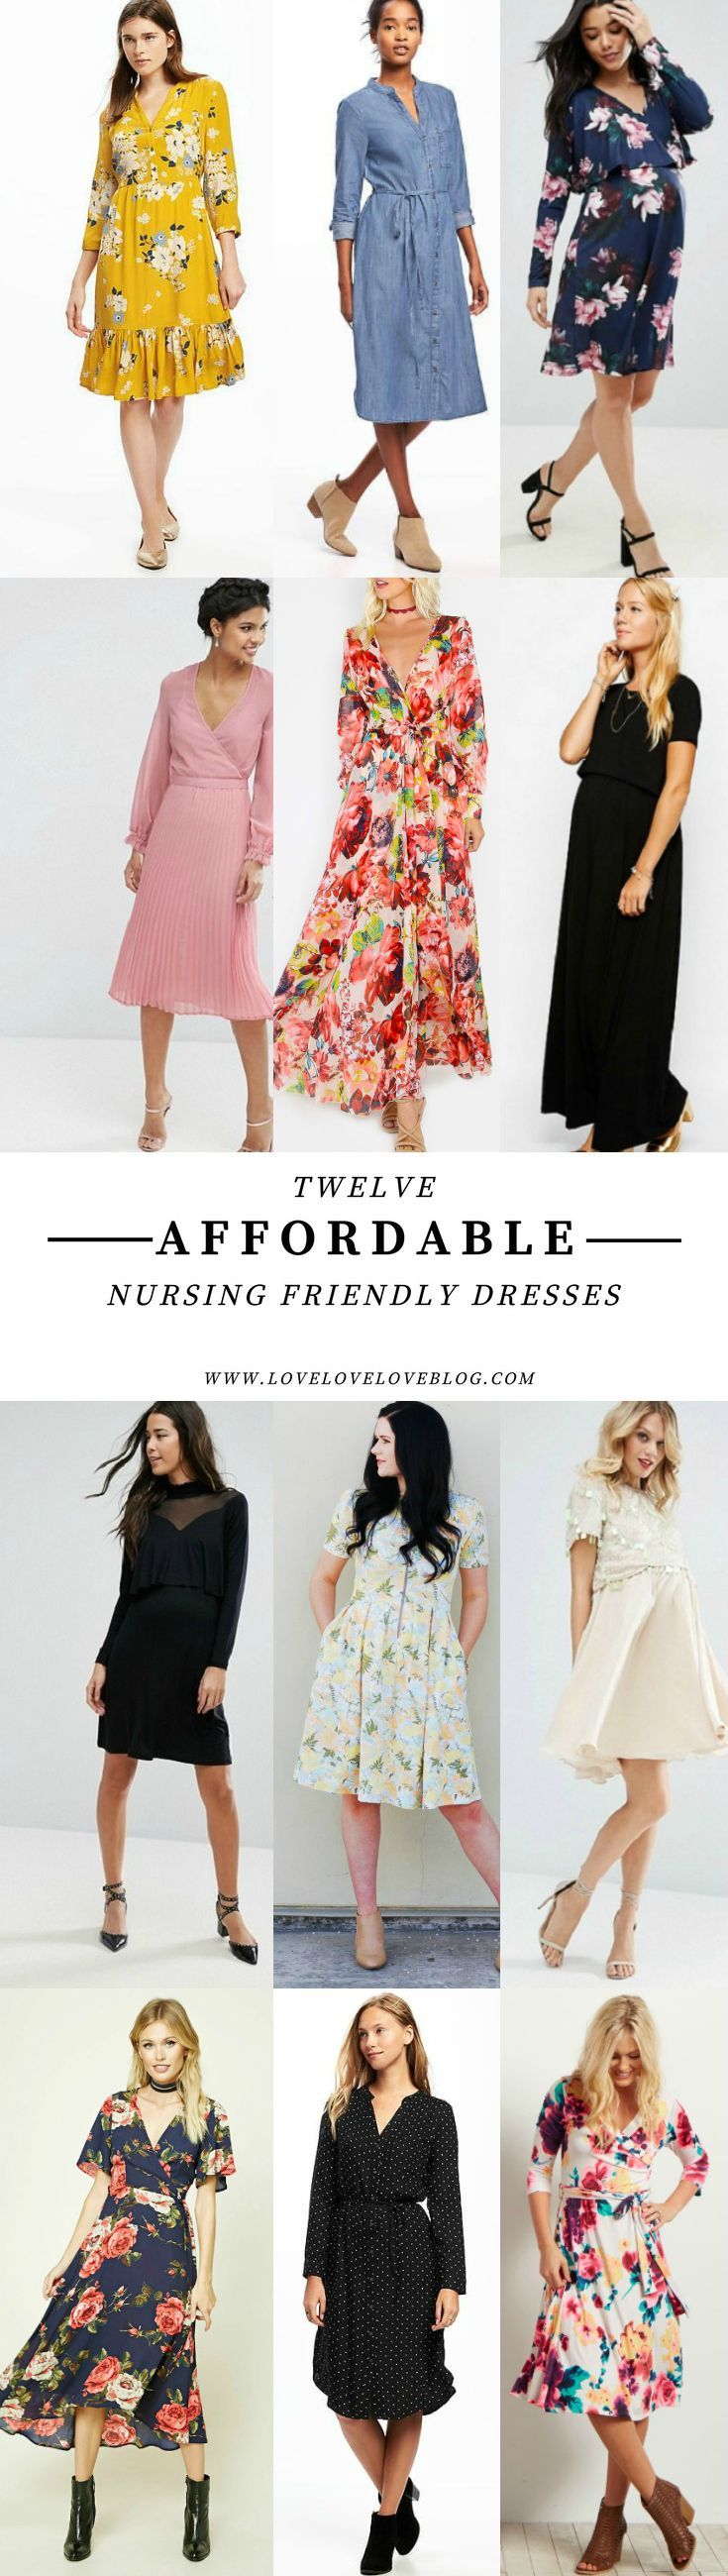 A blog about style, motherhood and living life affordably. Money-saving tips on fashion, decorating, and fitness trends.